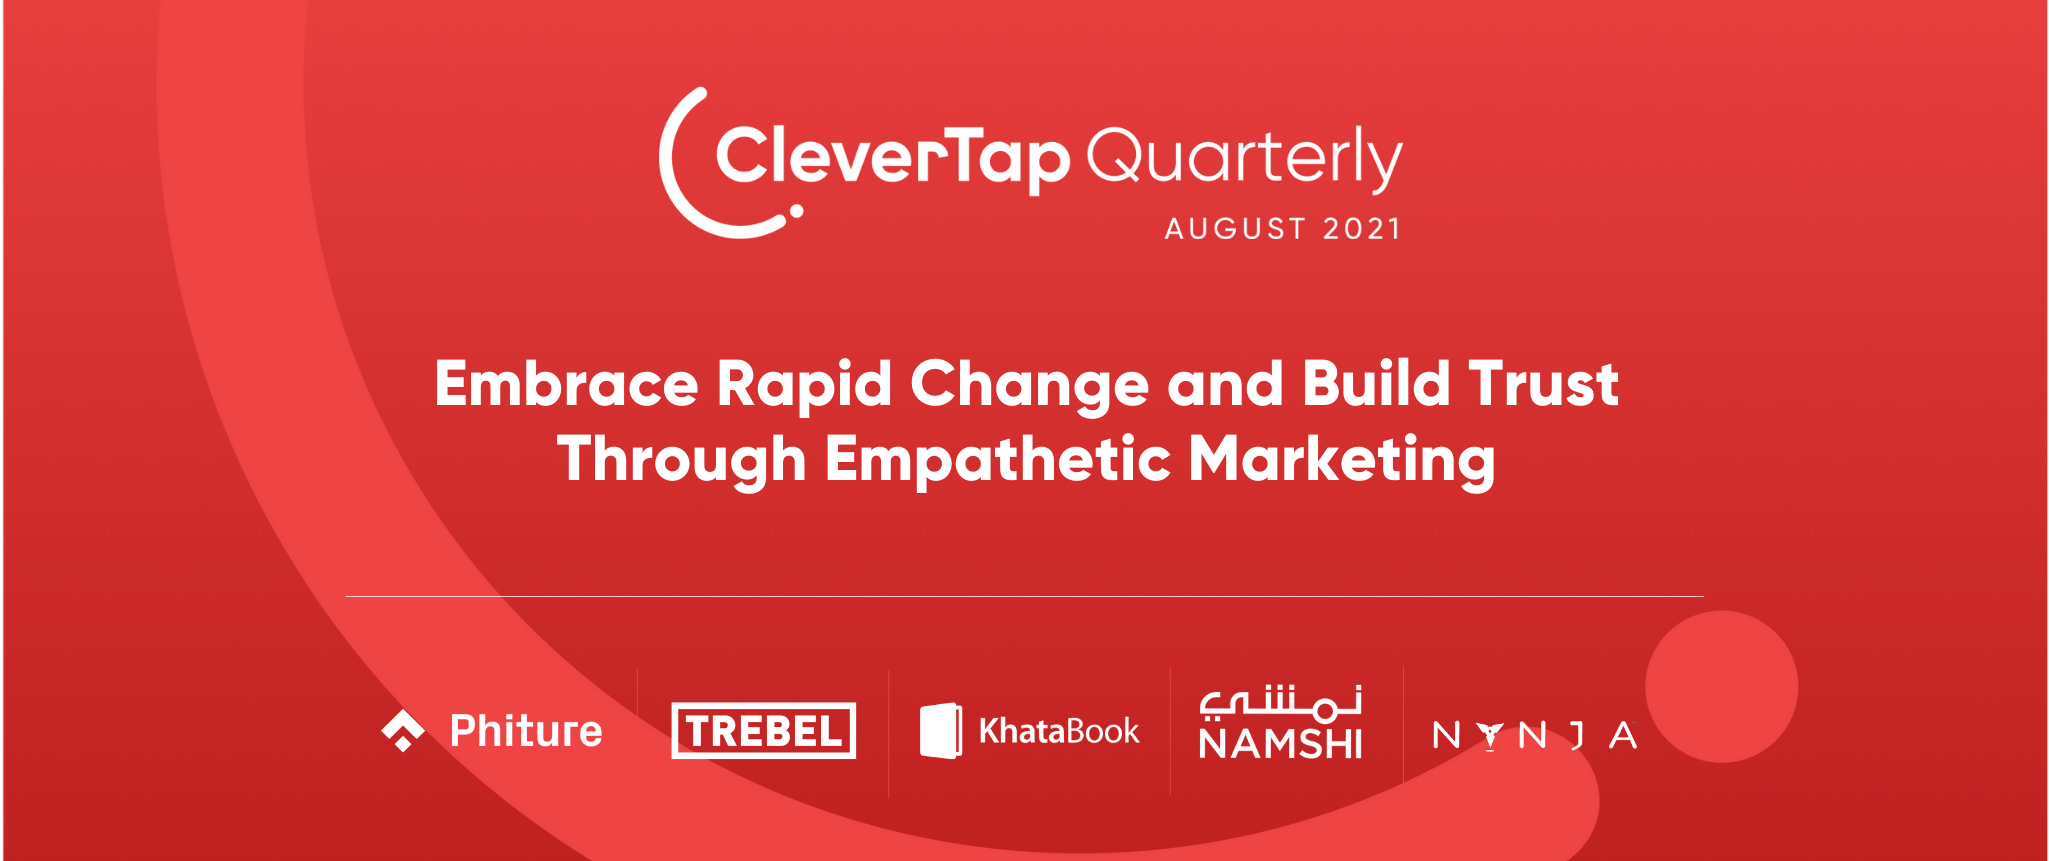 CleverTap Quarterly Showcase: 4 Marketing Strategies and Shortcuts From Engagement and Retention Experts